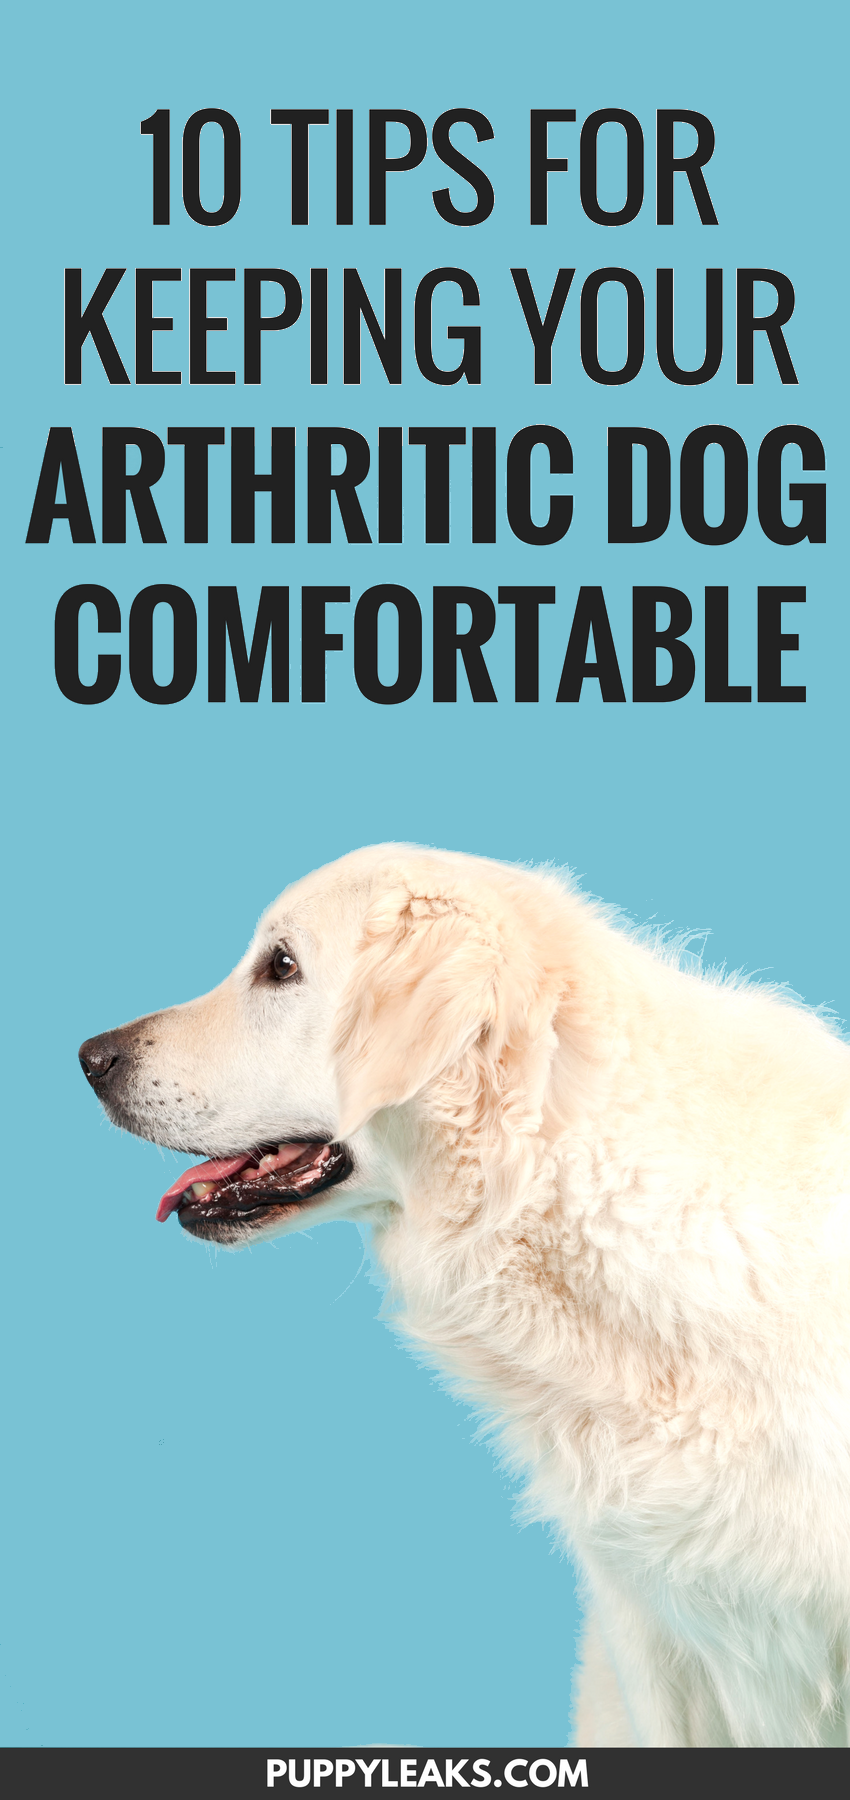 Tips to Keep Your Arthritic Dog Comfortable